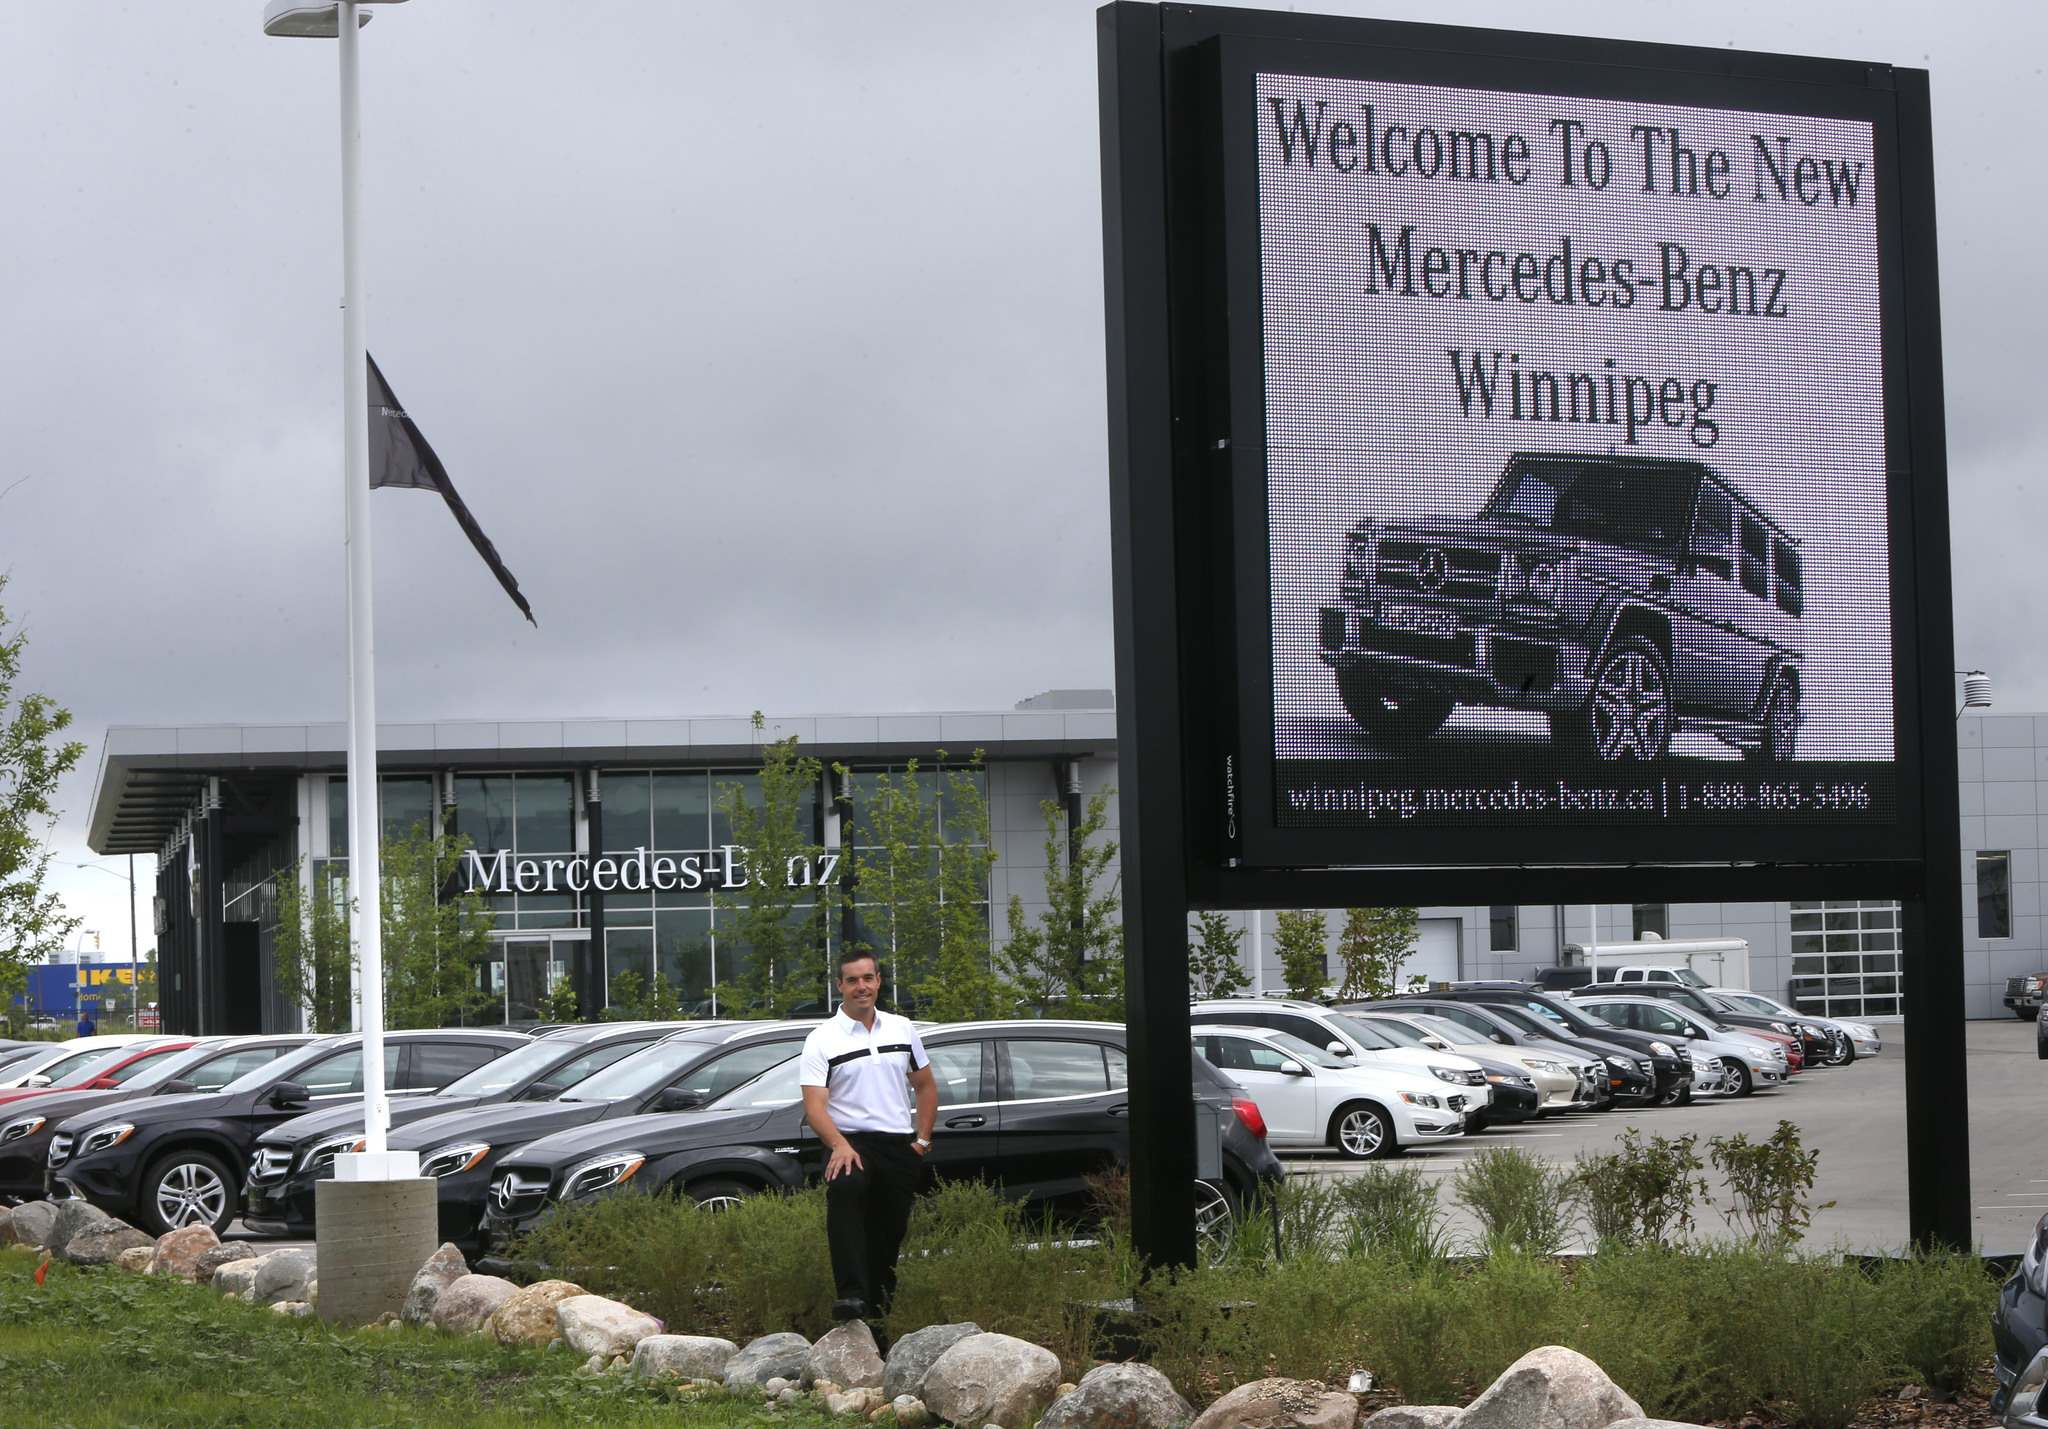 Mercedes-Benz Winnipeg president/owner Brian Lowes moved his dealership to 23 Rothwell Road off Kenaston Boulevard in 2015. (Wayne Glowacki / Winnipeg Free Press files)</p>